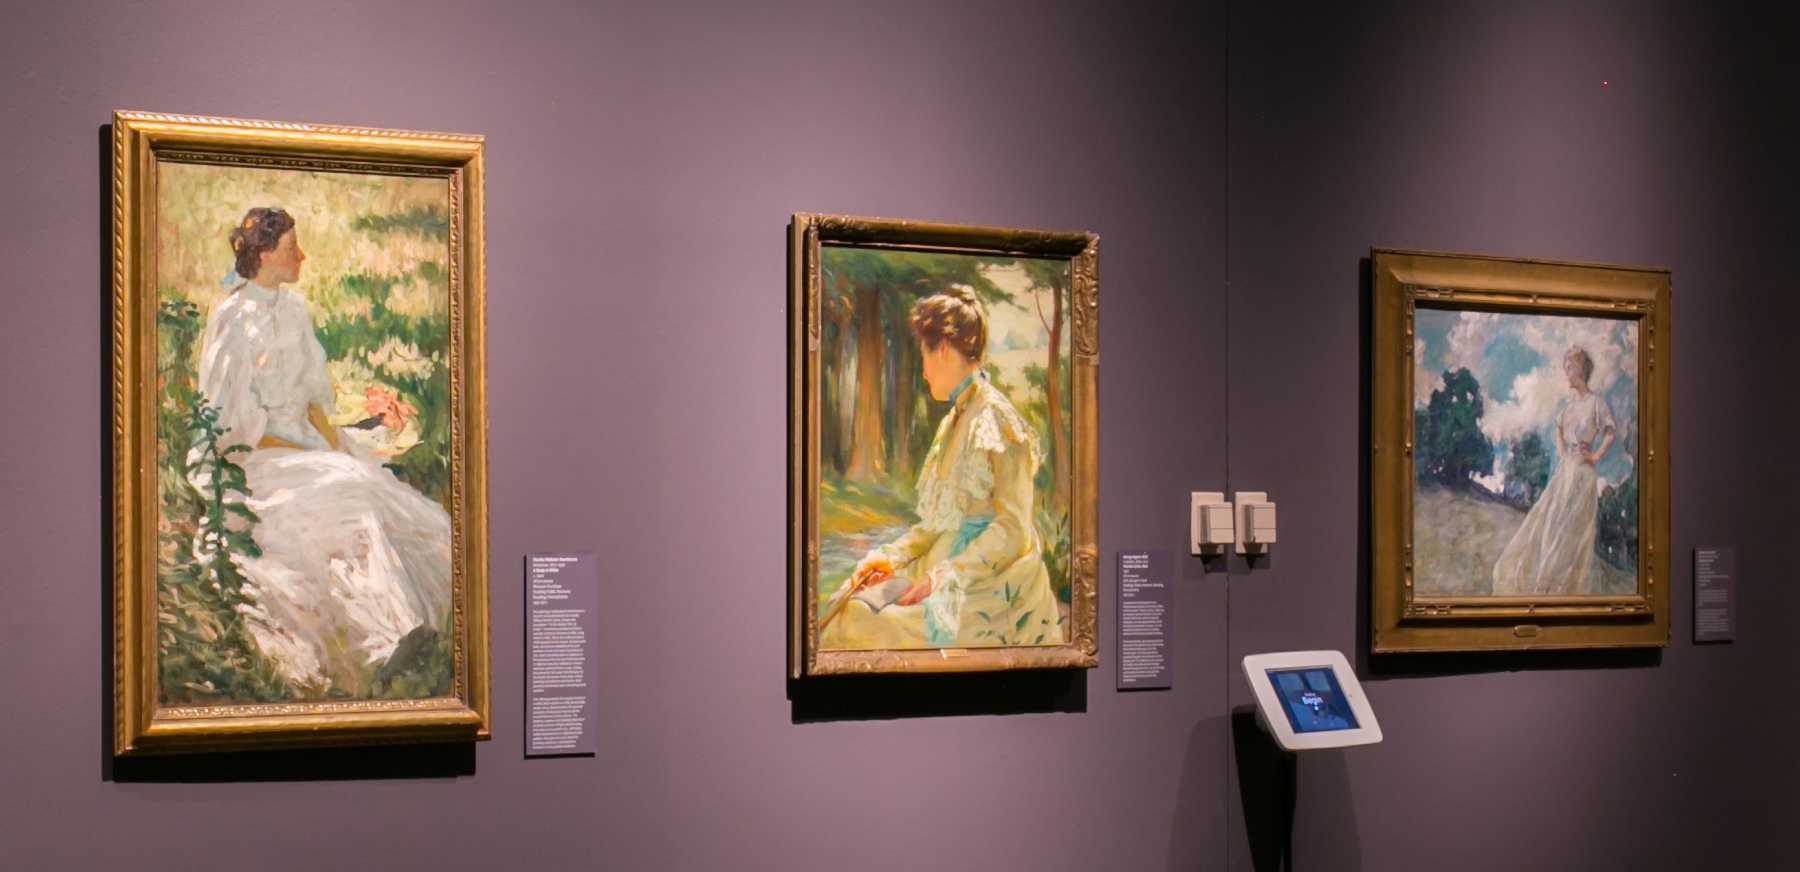 Images Left to Right:   Charles Webster Hawthorne, American 1872–1930,  A Study in White , c. 1900, oil on canvas, Museum Purchase, Reading Public Museum, Reading, Pennsylvania 1931.197.1; George Agnew Reid, Canadian, 1860–1947,  Portrait of Mrs. Reid , 1902, oil on canvas, Gift, George A. Reid, Reading Public Museum, Reading, Pennsylvania, 1922.915.1; Robert Lewis Reid, American, 1862–1929,  Summer Breezes,  c. 1910–1920, oil on canvas, Museum Purchase, Reading Public Museum, Reading, Pennsylvania 1931.641.1